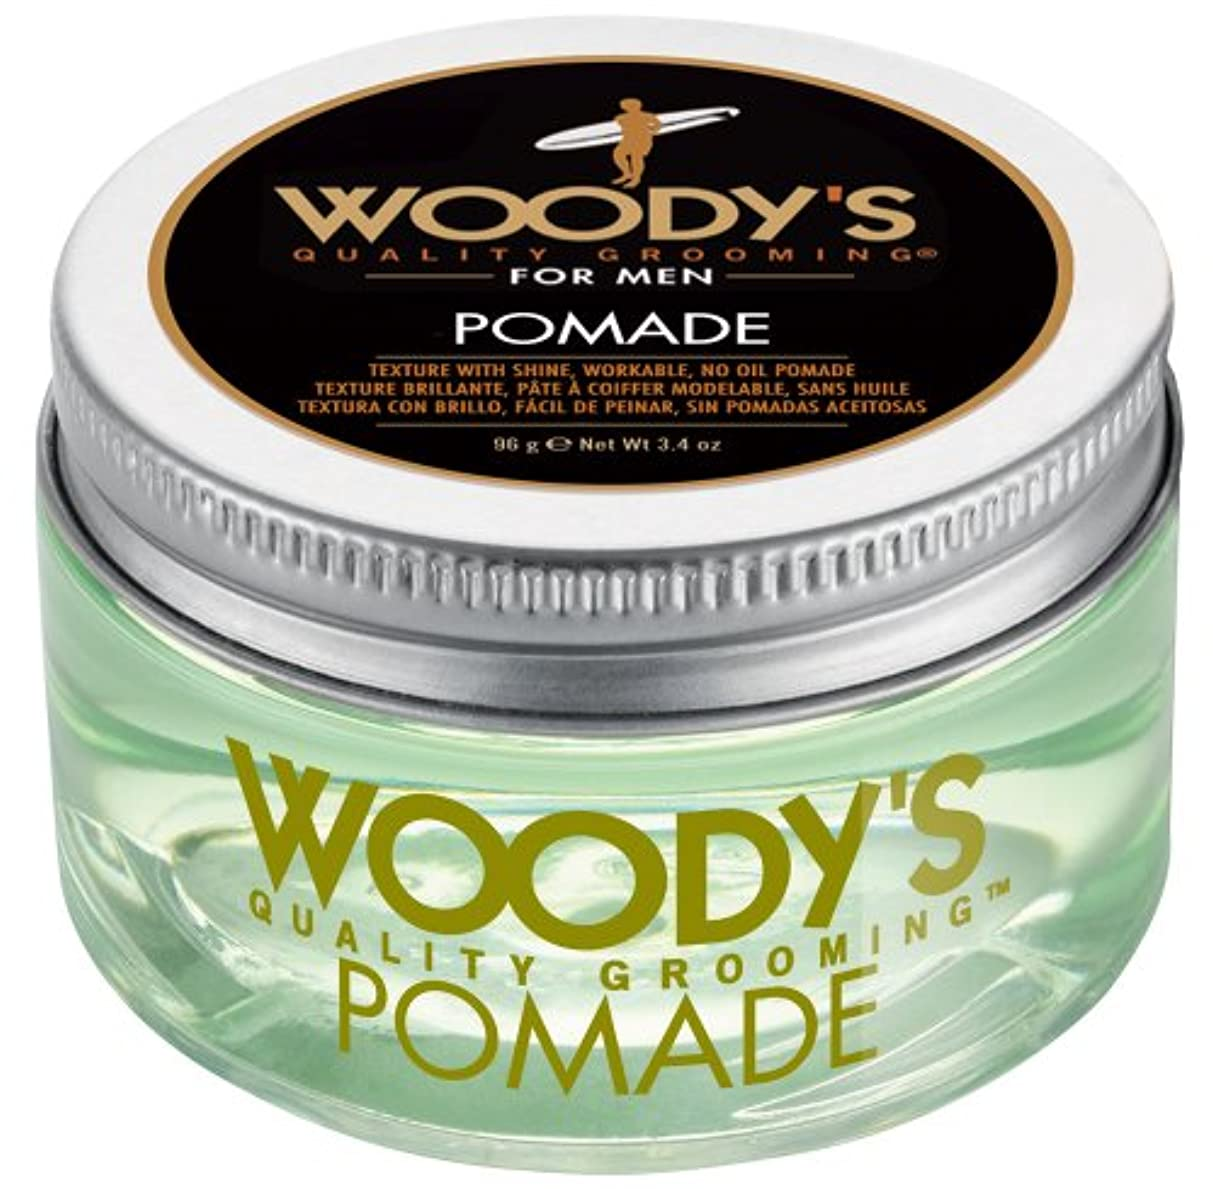 挽く下手入手しますWoody's Pomade for Men, Pomade, 3.4 Ounce